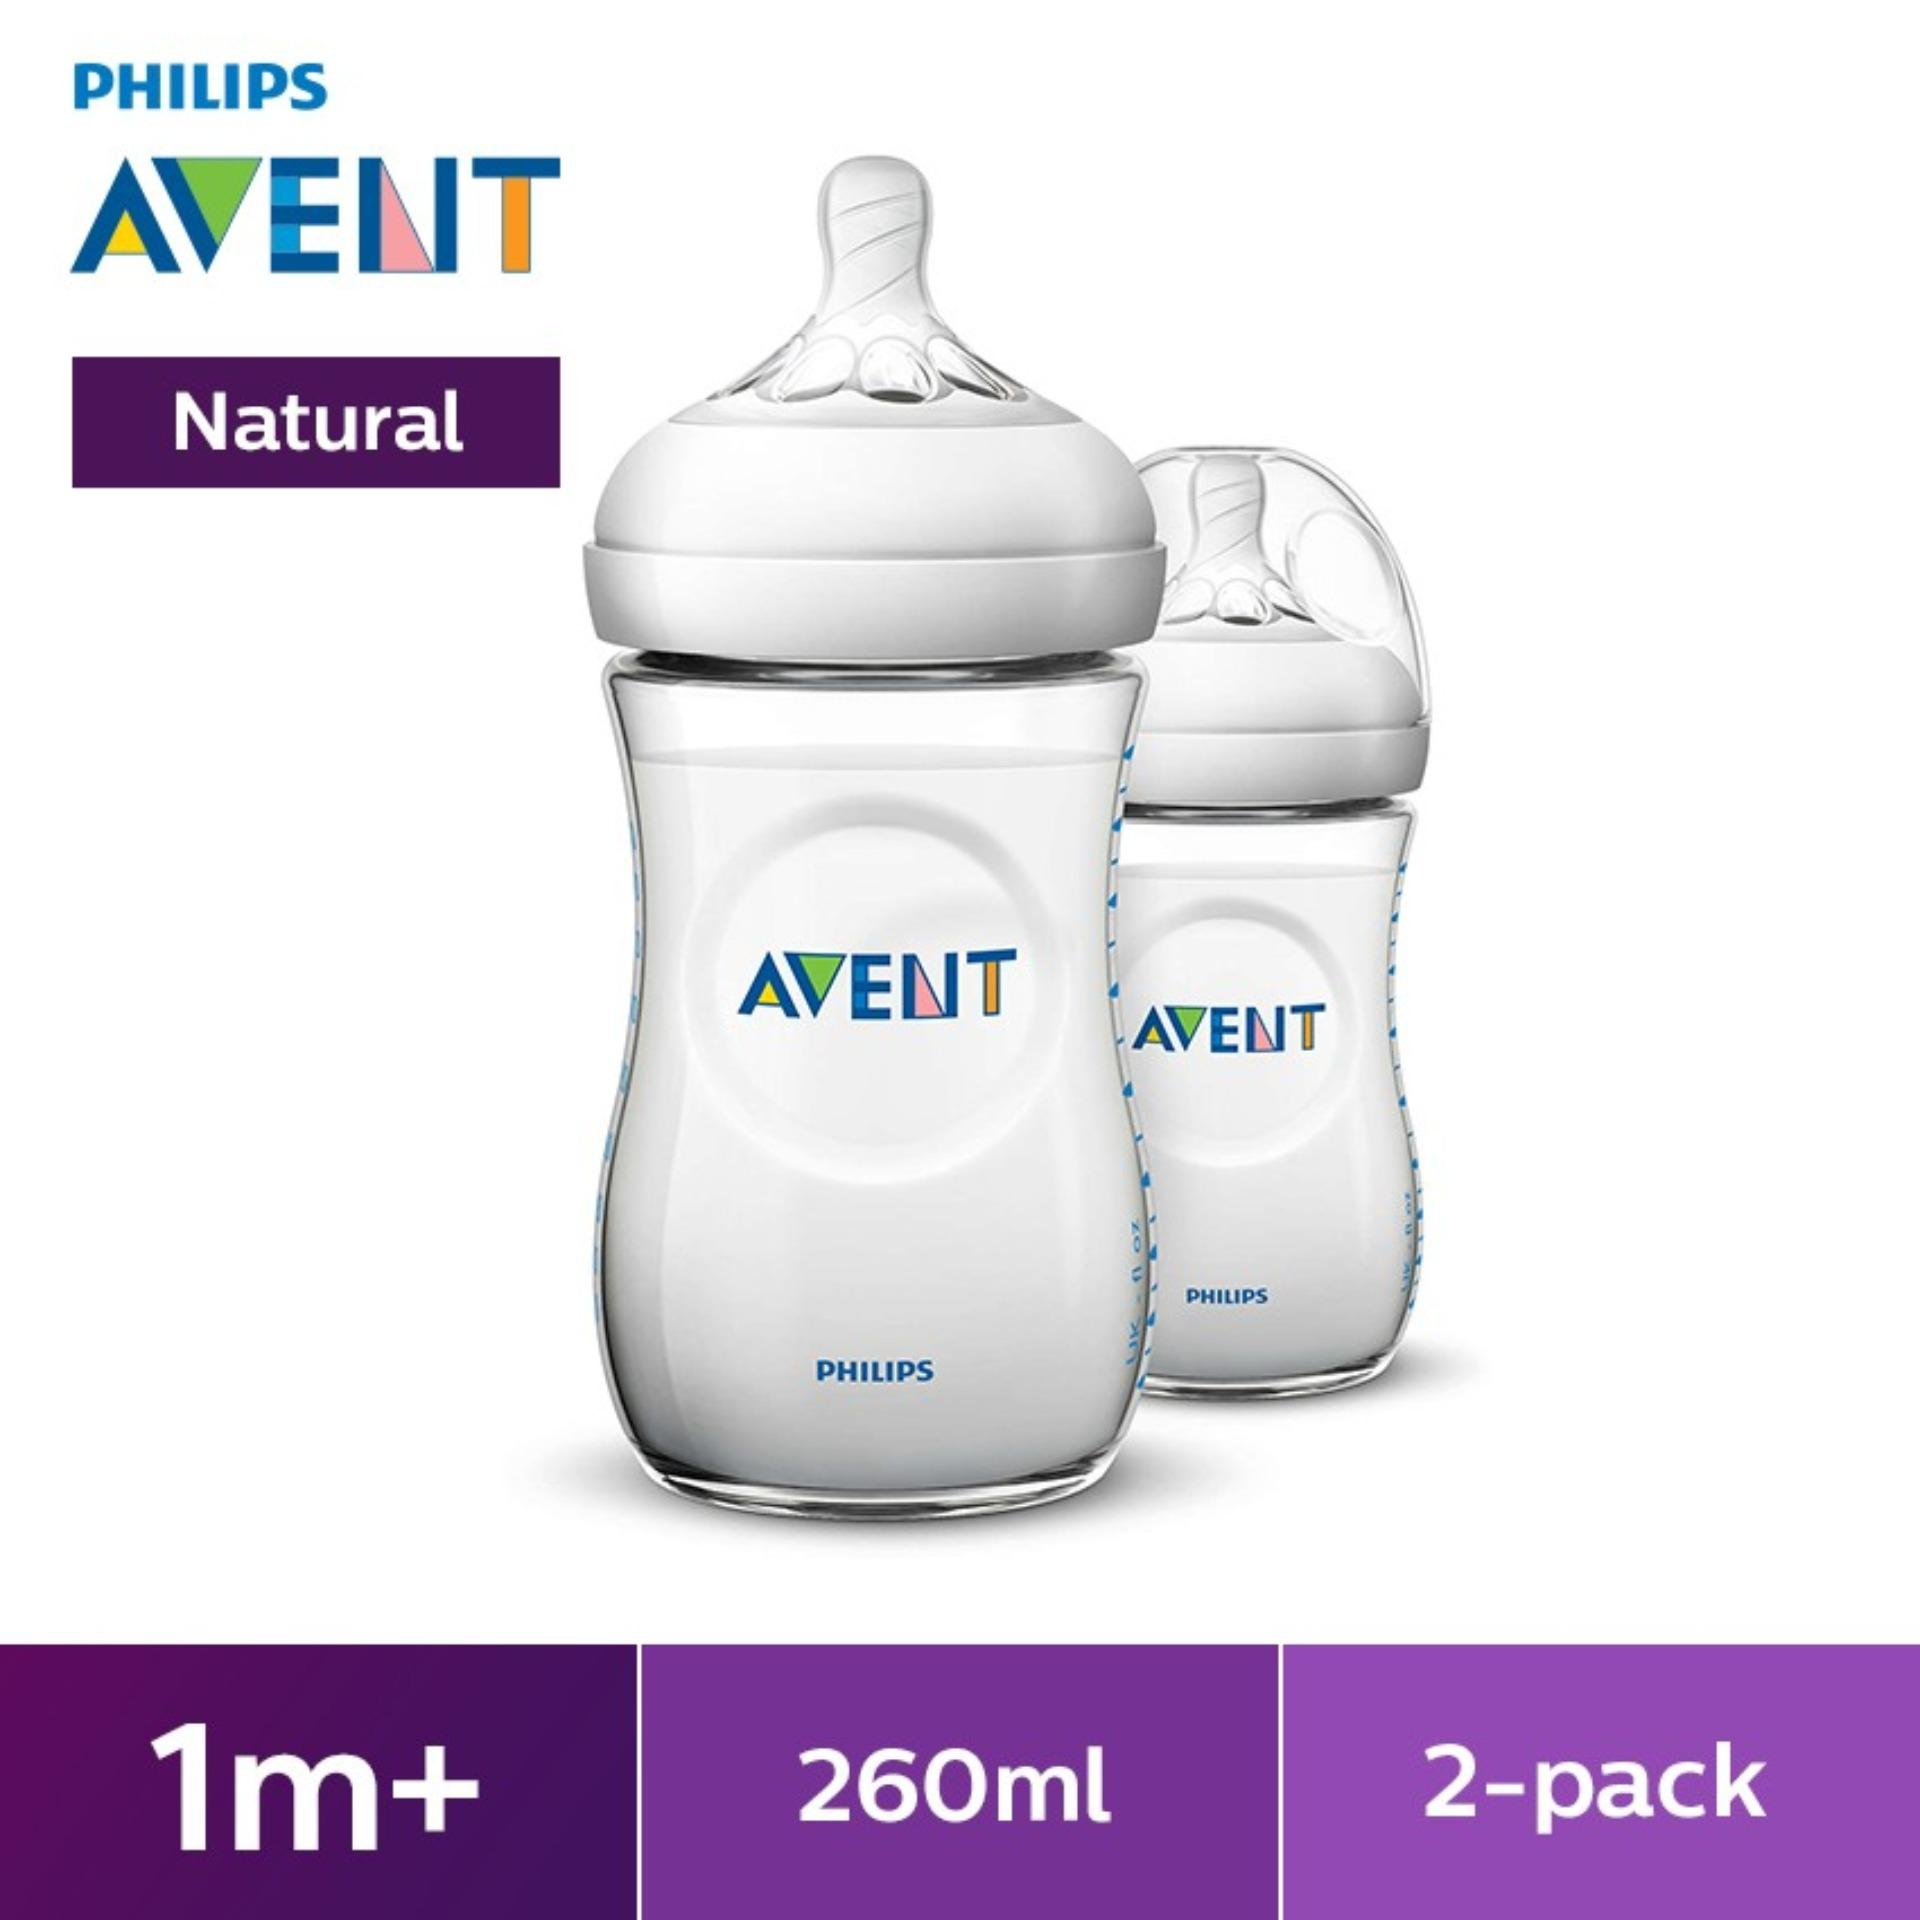 Feeding Bottles For Sale Baby Online Brands Prices Twin Pack Kit Wiper Fluid Pouch 400ml X 2pcs Philips Avent Natural 9oz Bottle